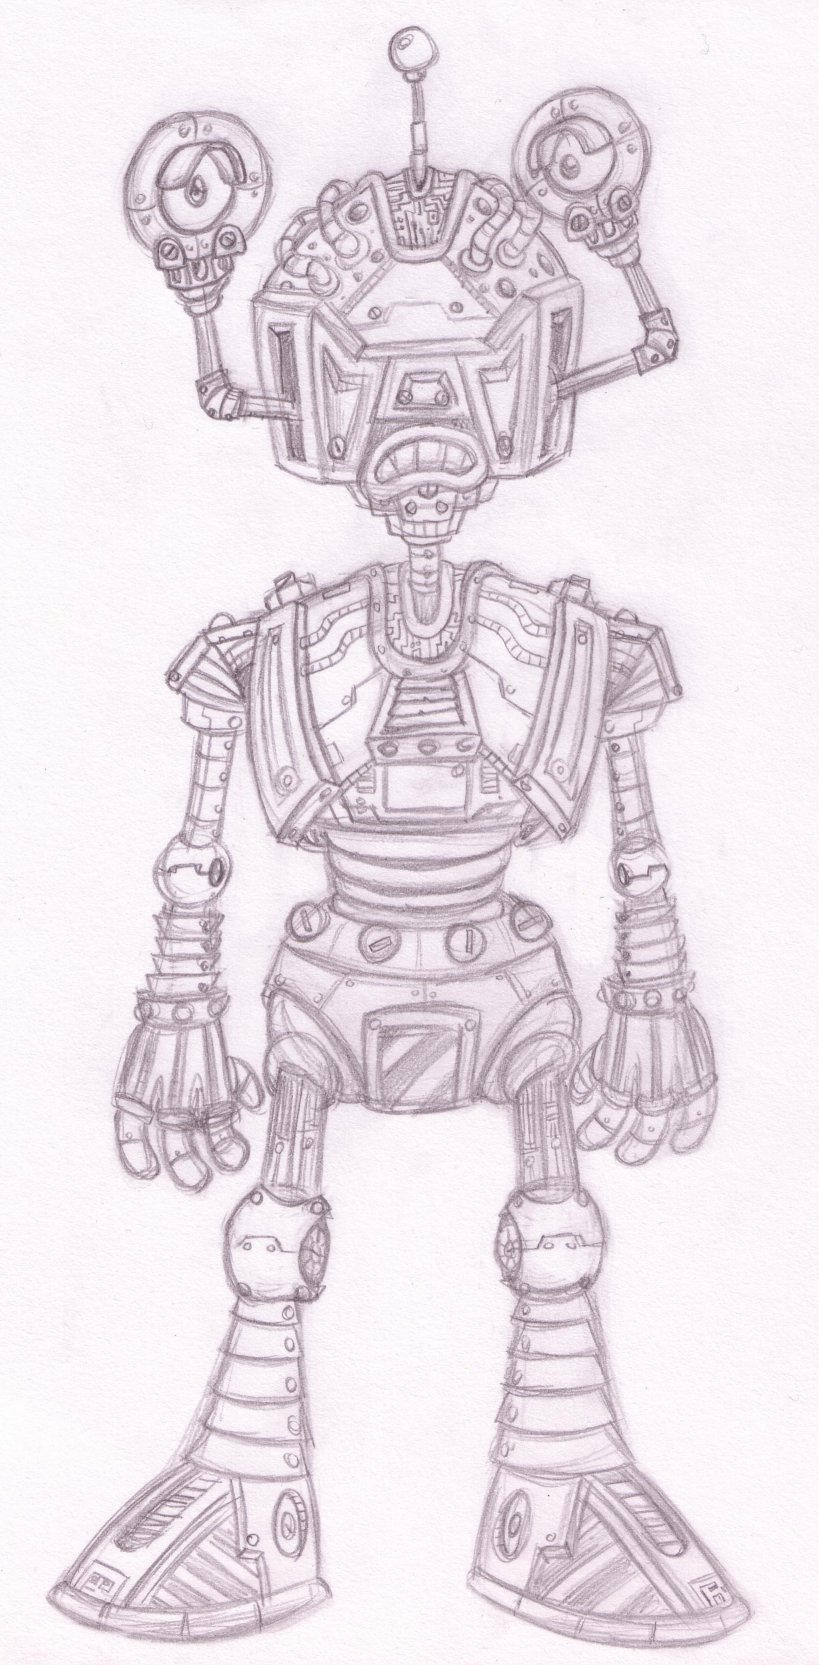 Big Scary Robot Man Sketch by Splapp-me-do